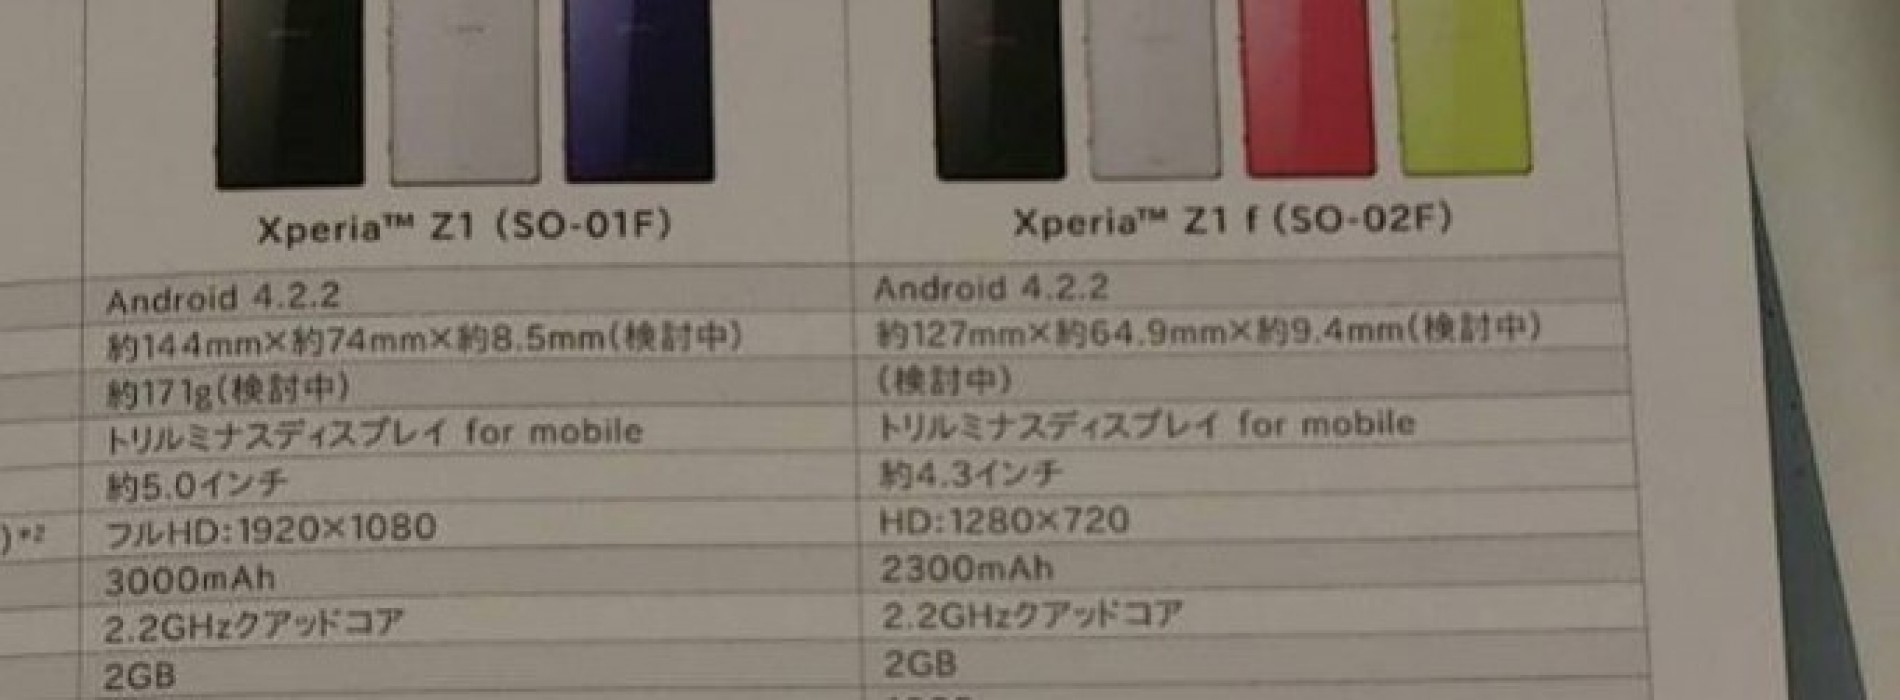 Sony Xperia Z1 f shows off for the camera, could be a Japanese miniature Z1